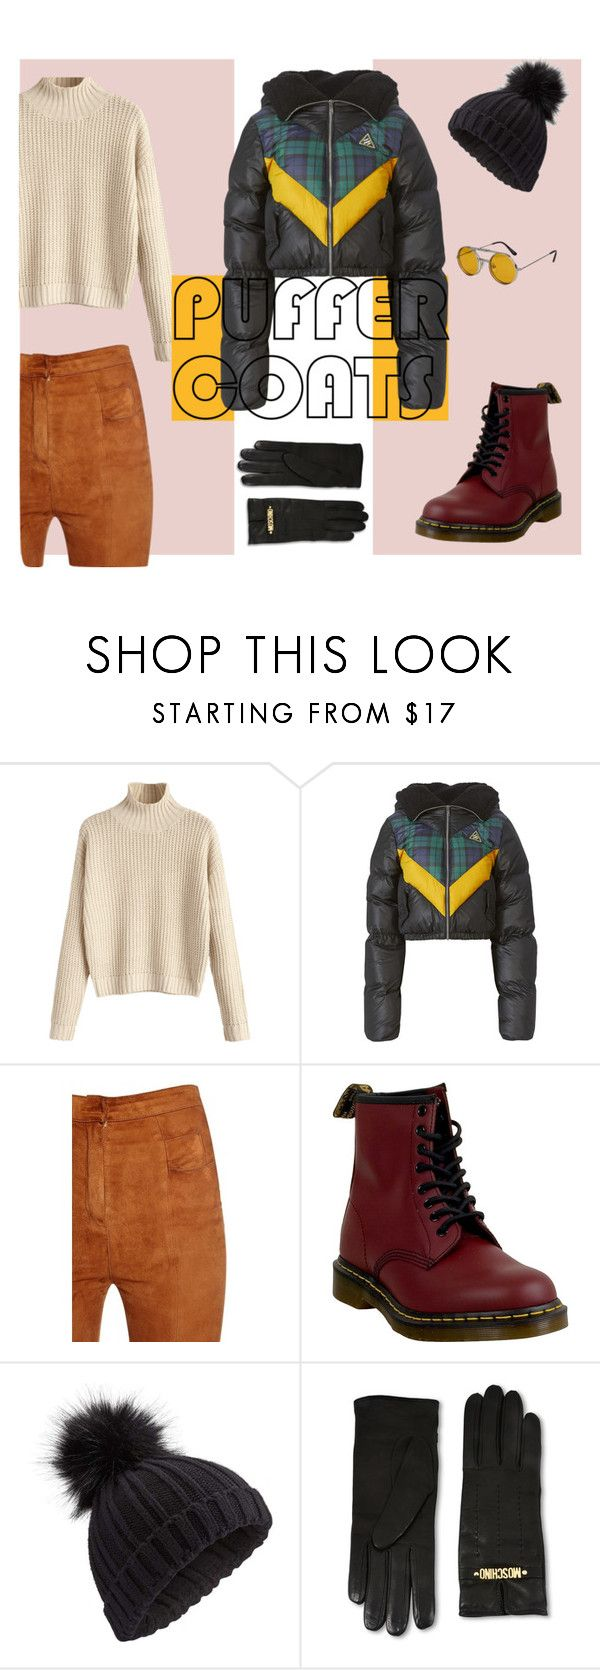 """stay puff marshmallow fashionable cousin"" by galilea-dz ❤ liked on Polyvore featuring Puma, Balmain, Dr. Martens, Miss Selfridge, Moschino, Spitfire and puffercoats"